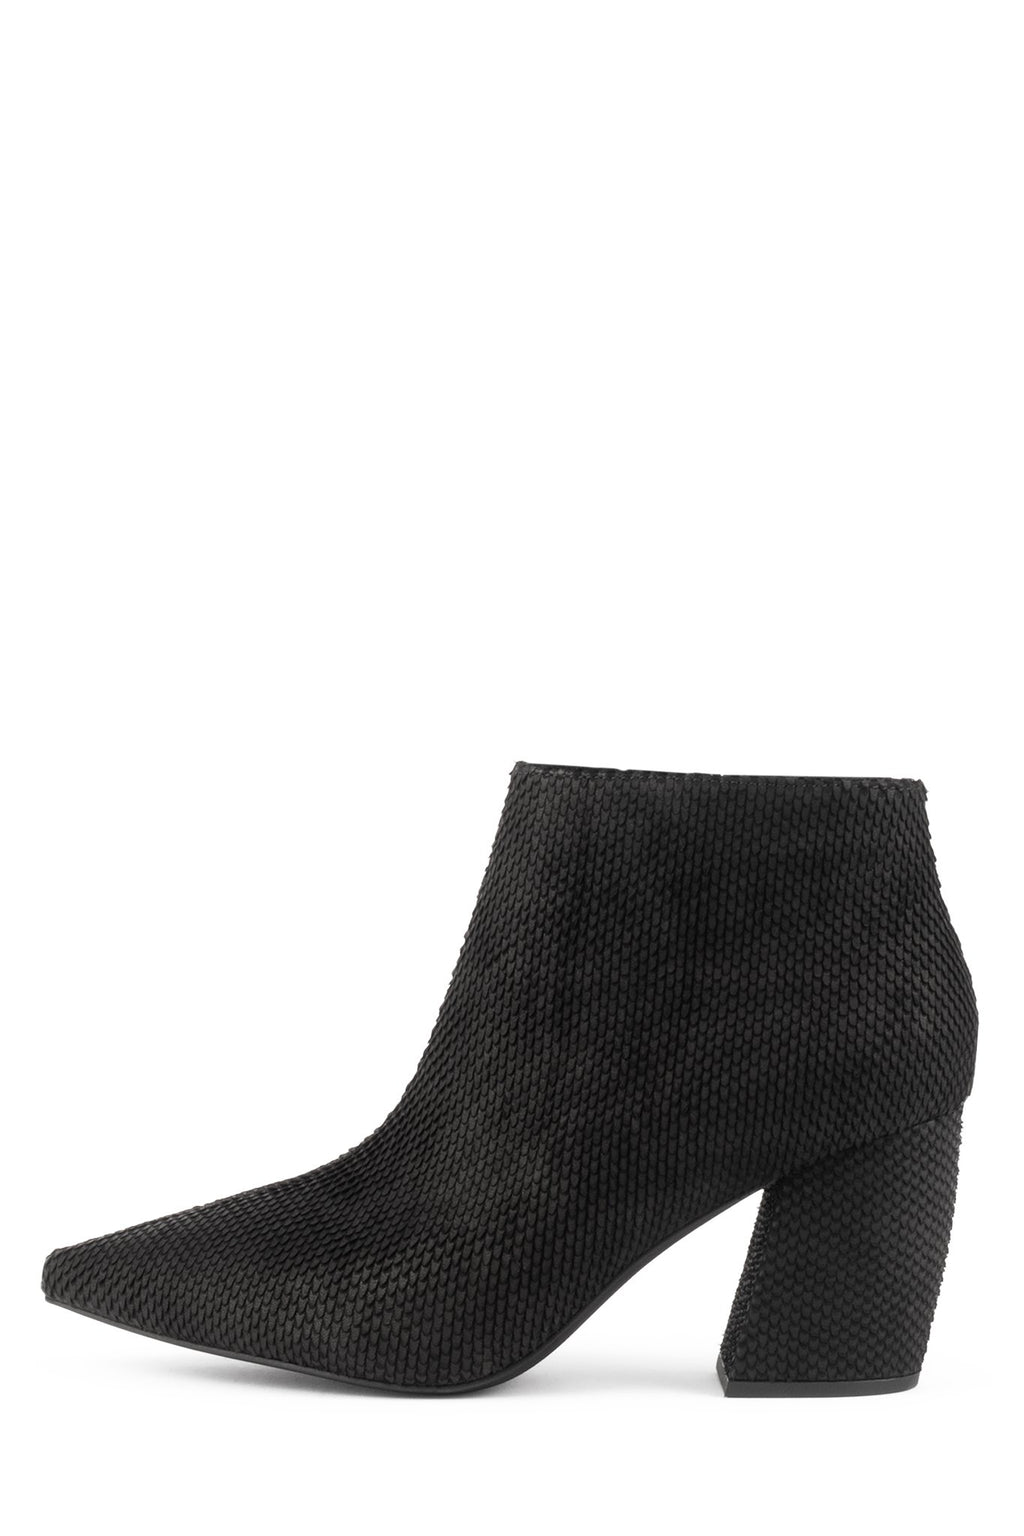 TOTAL - Jeffrey Campbell